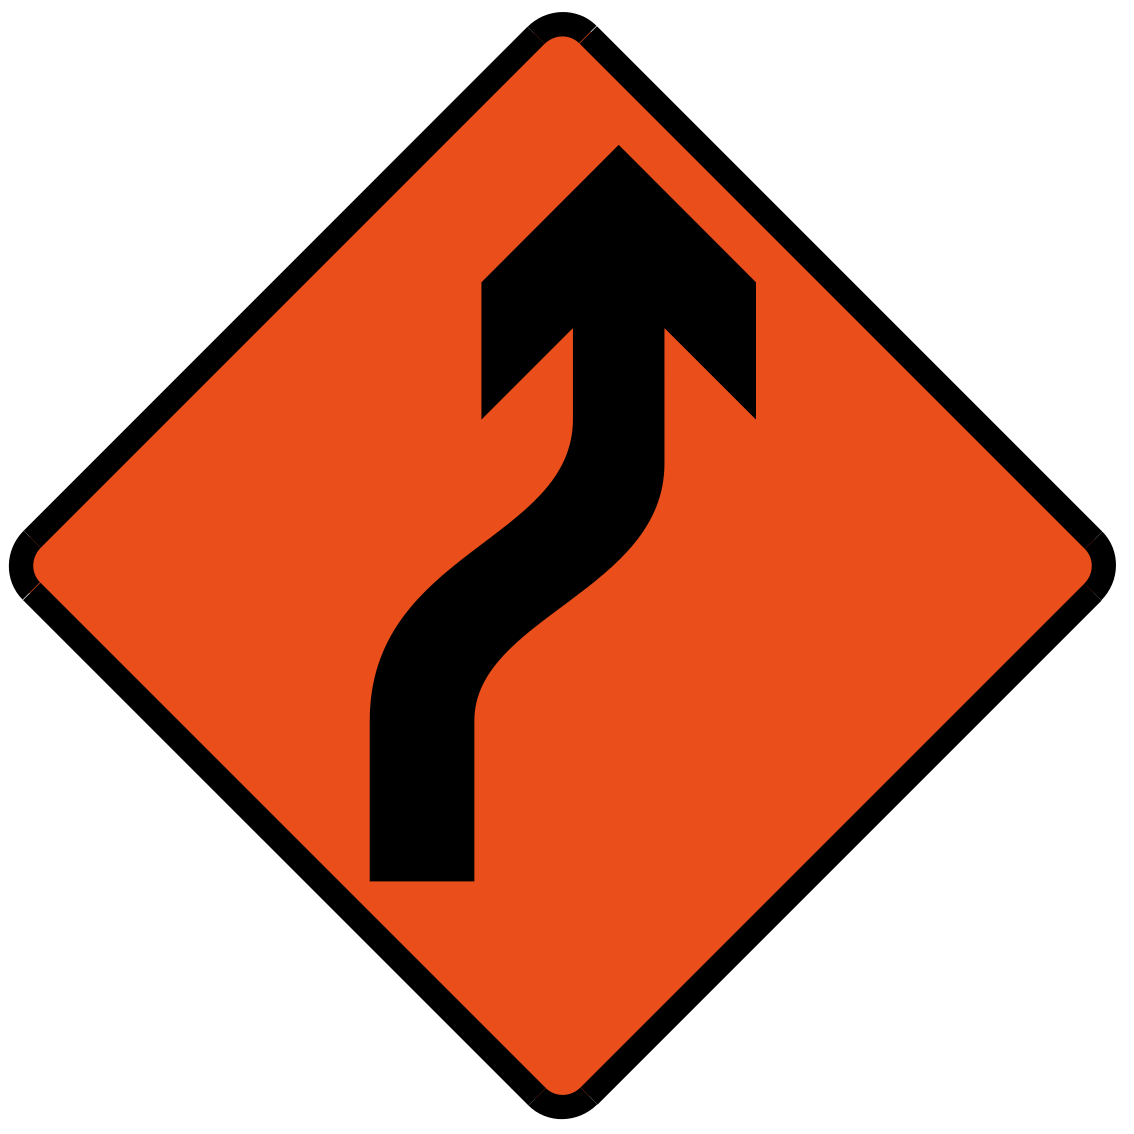 Bend to right (Left if symbol is reversed)